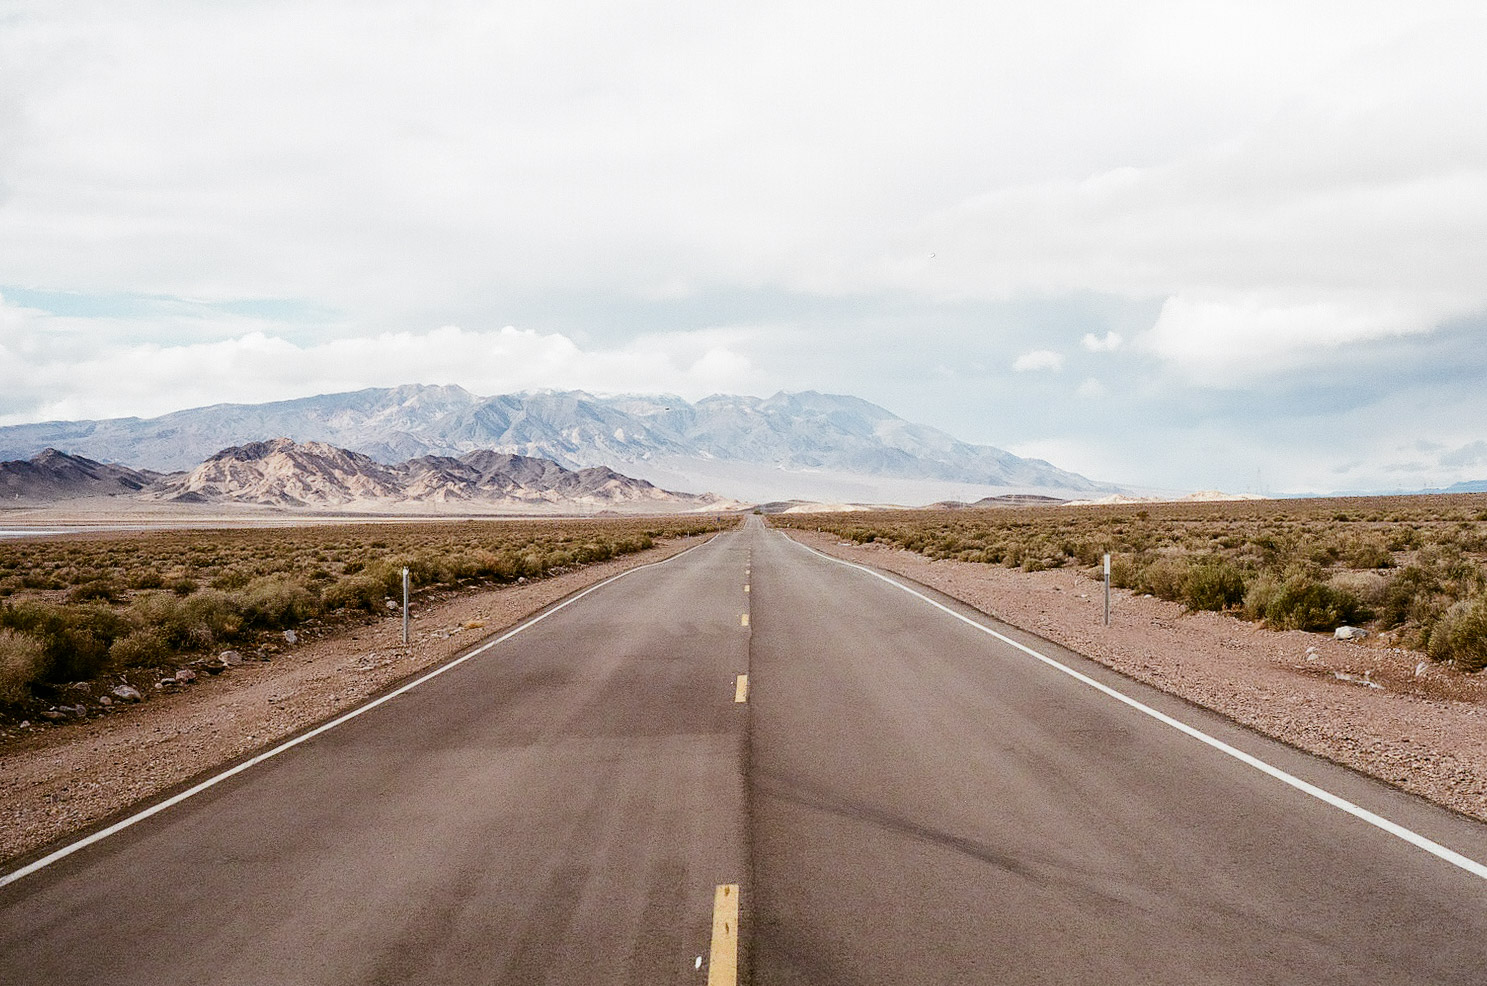 Coming into Death Valley, the land is harsh and colored in a mostly monochromatic, earthen palette. It's hard to imagine what the desolate landscape would be like in oppressive, dangerous July heat.